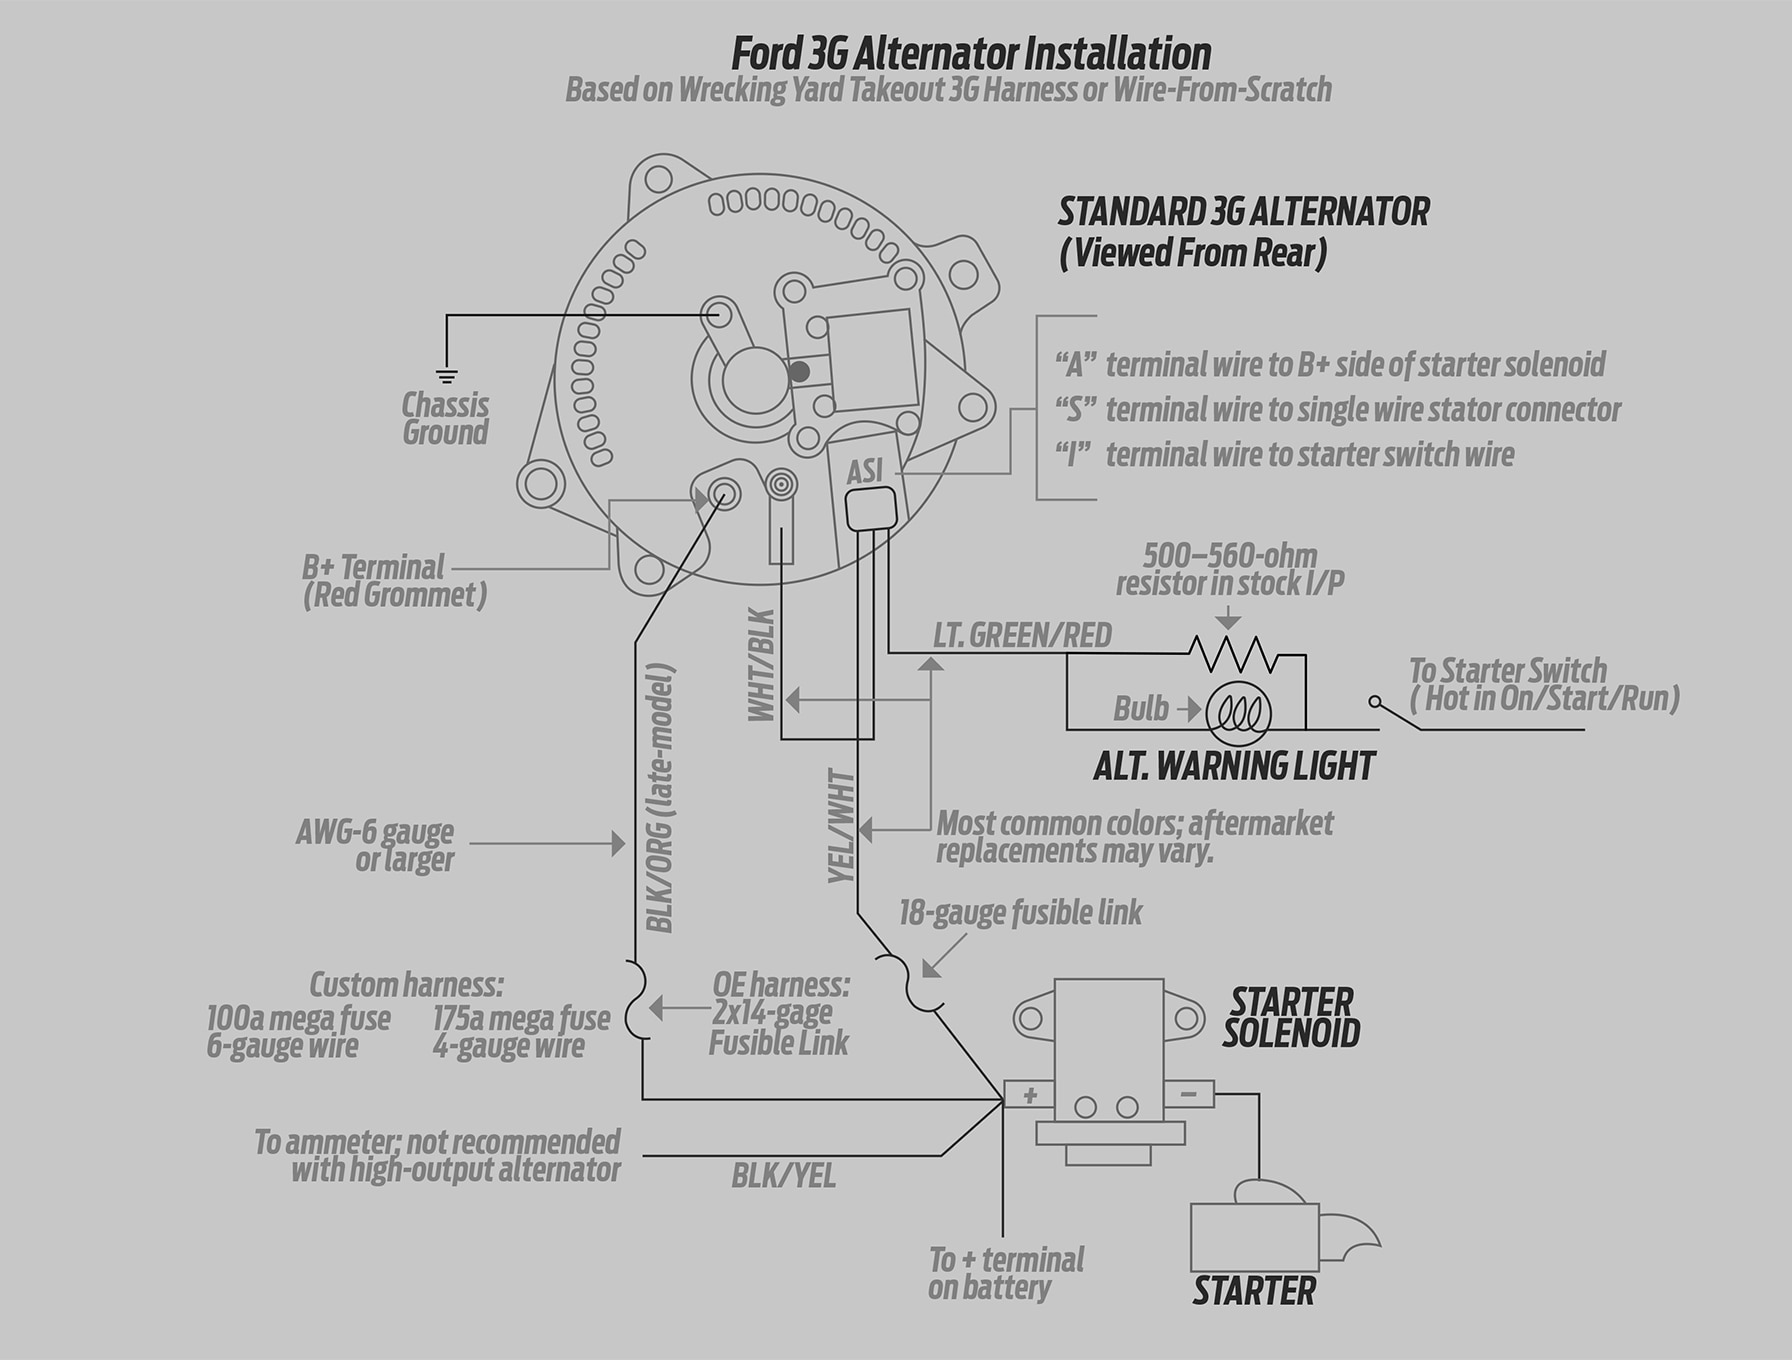 Stupendous How To Install A High Output Ford 3G Alternator Into Older Fords Ranpur Mohammedshrine Wiring Digital Resources Ranpurmohammedshrineorg